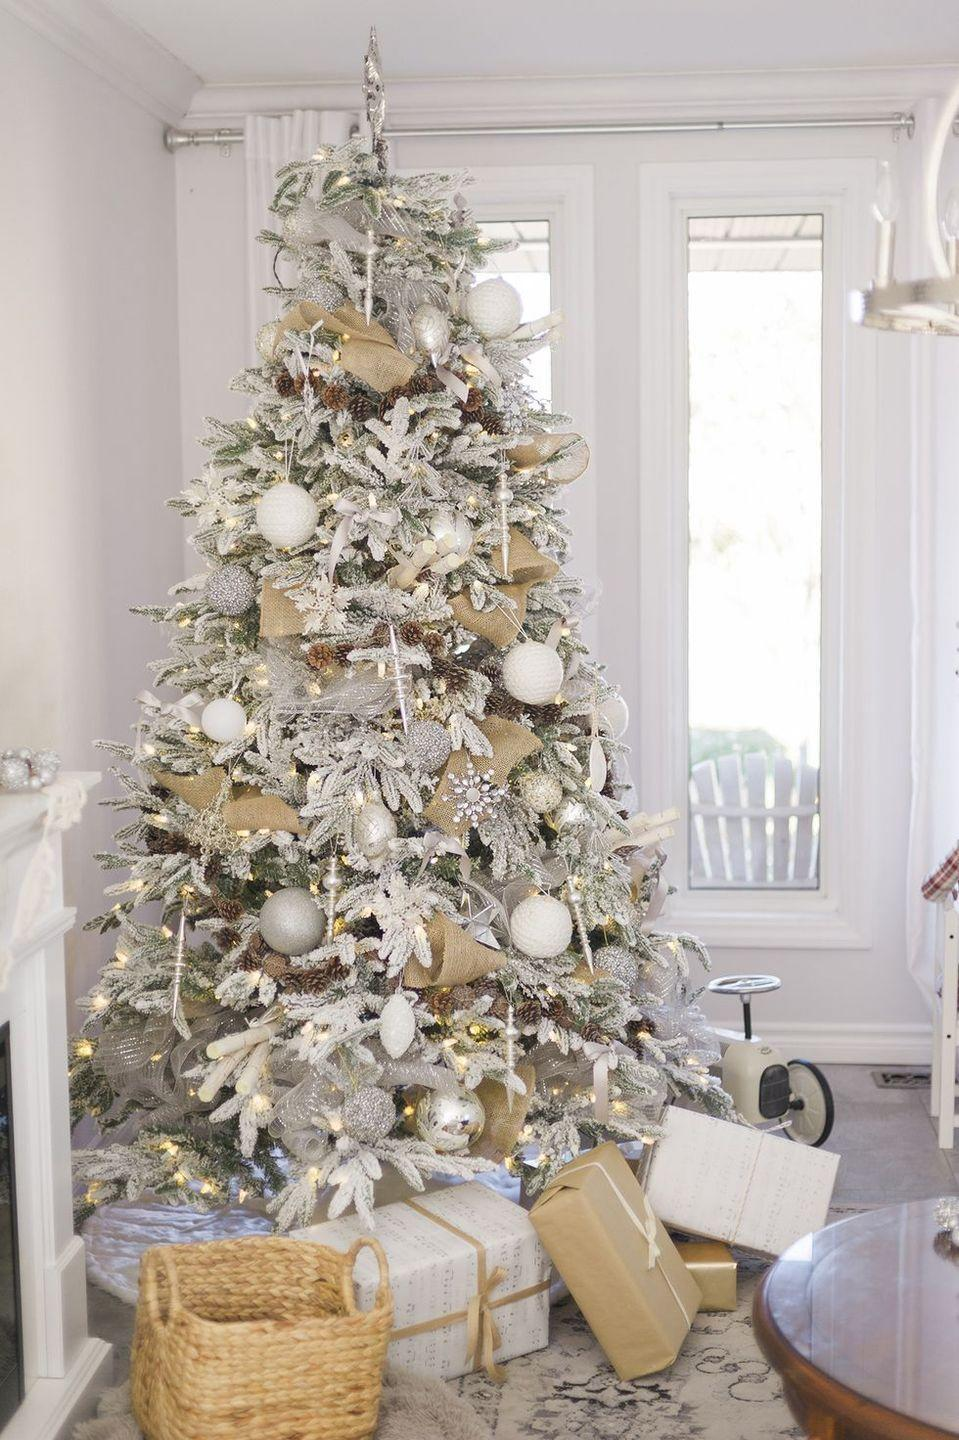 <p>A white palette makes a statement with this Cape Cod–inspired Christmas tree. A snow-dusted look is fully embraced with white ornaments and presents, plus natural woven ribbon and other earthy touches. </p>